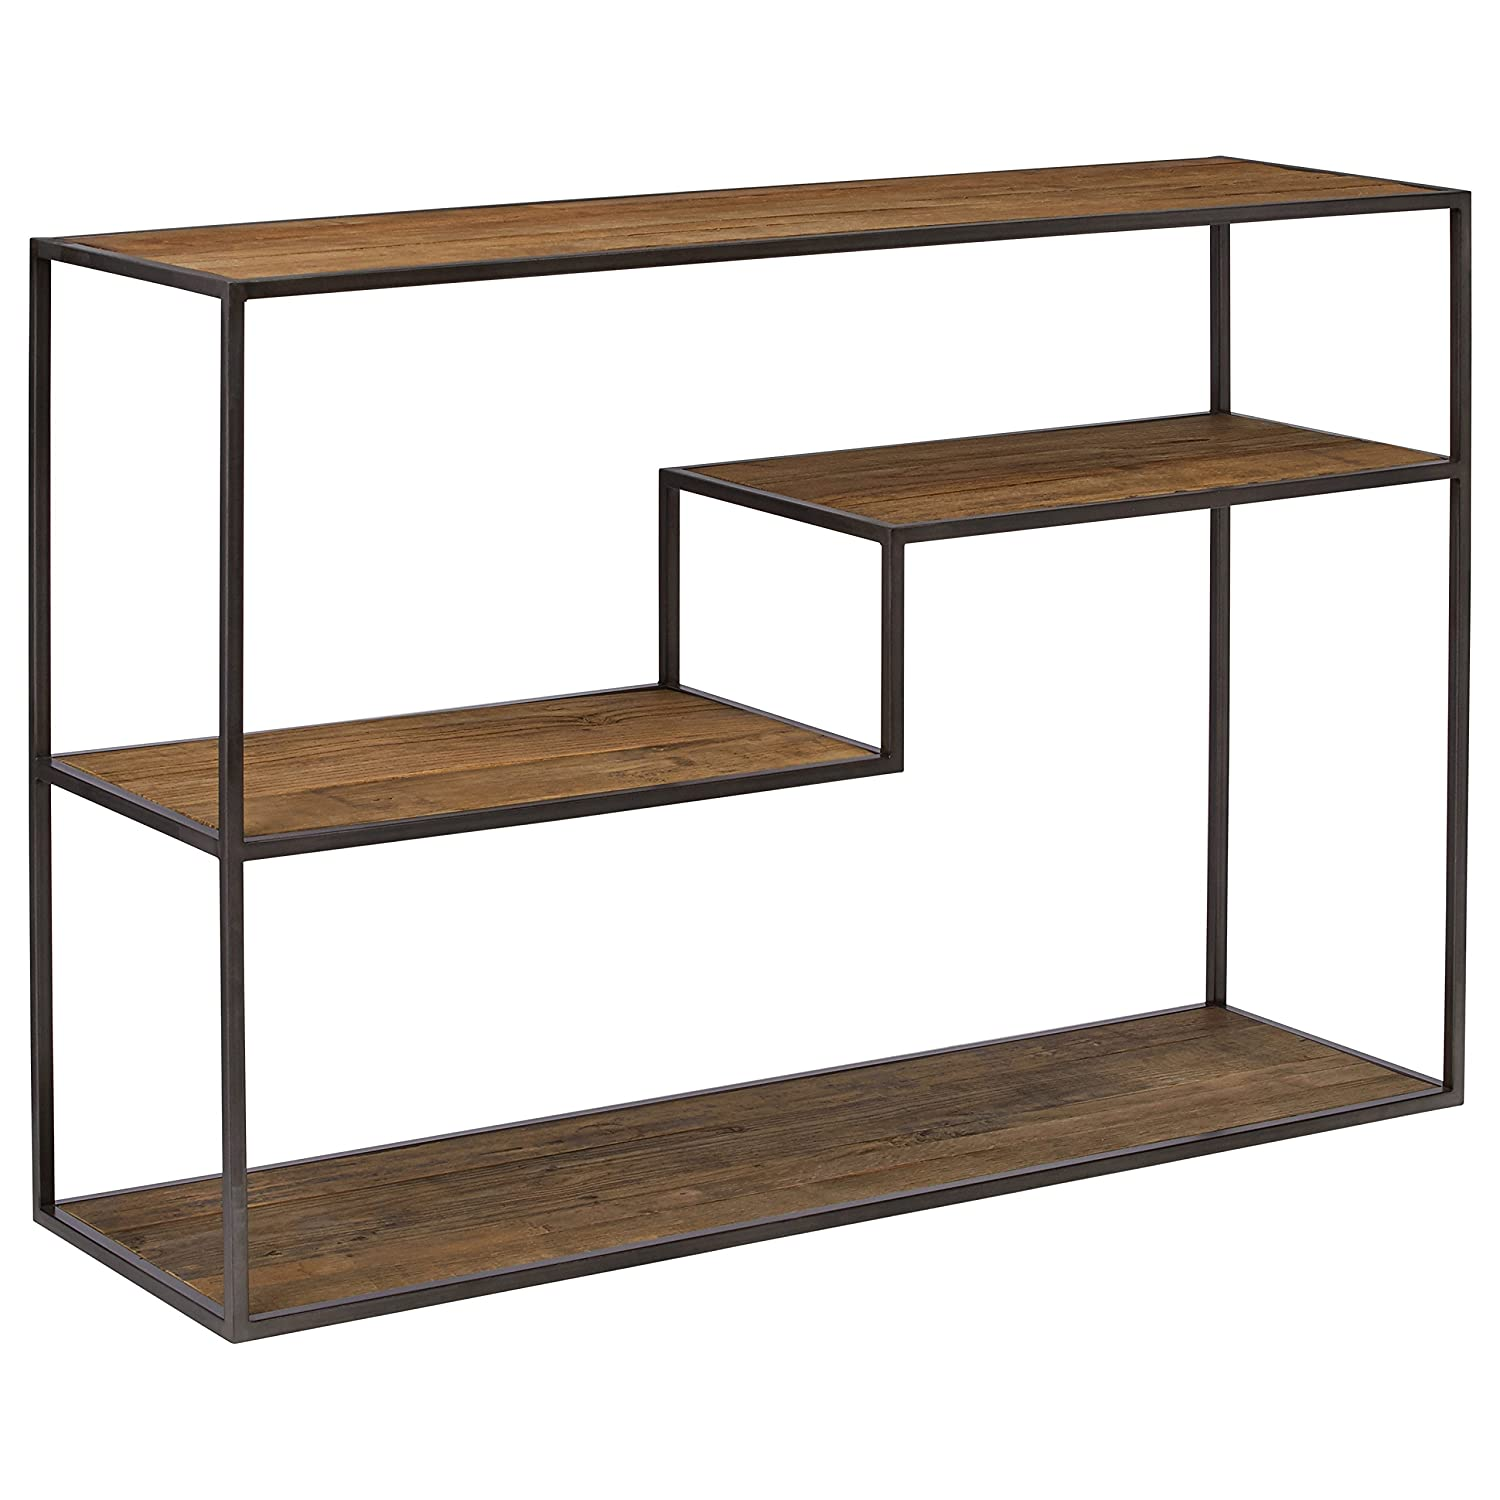 Rivet Mid-Century Modern Wood and Metal Bookcase, 14 W, Wood and Dark Metal